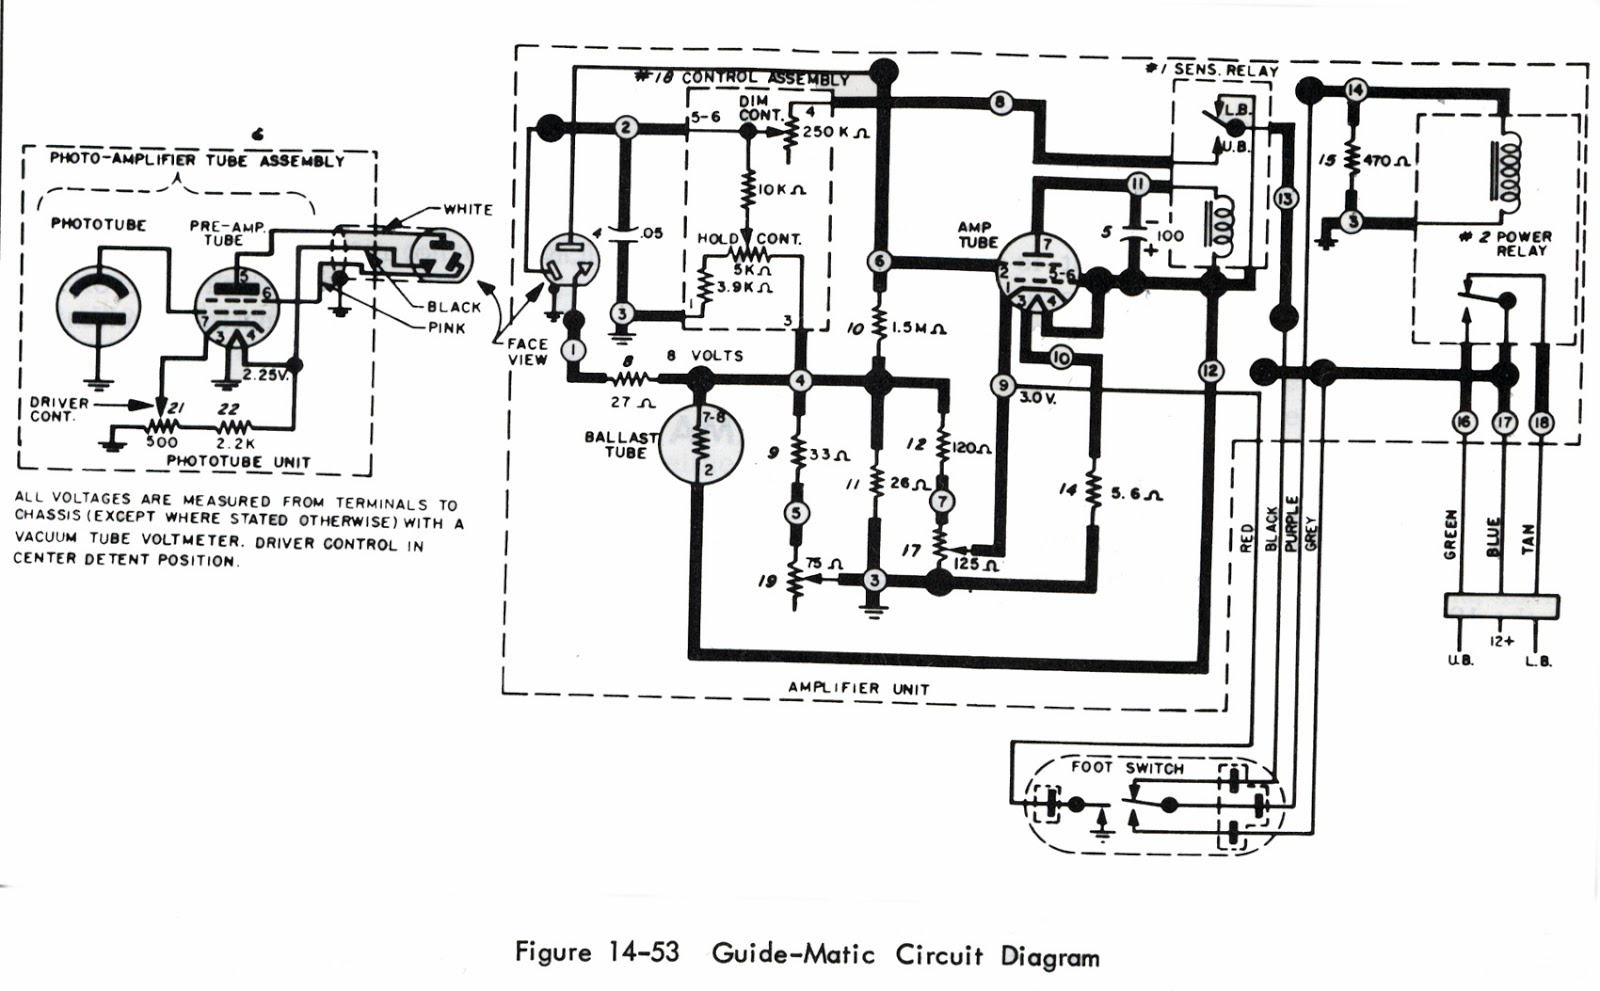 1966 Buick Wildcat Wiring Diagram Electric Motor Diagrams Single Phase 1967 Imageresizertool Com